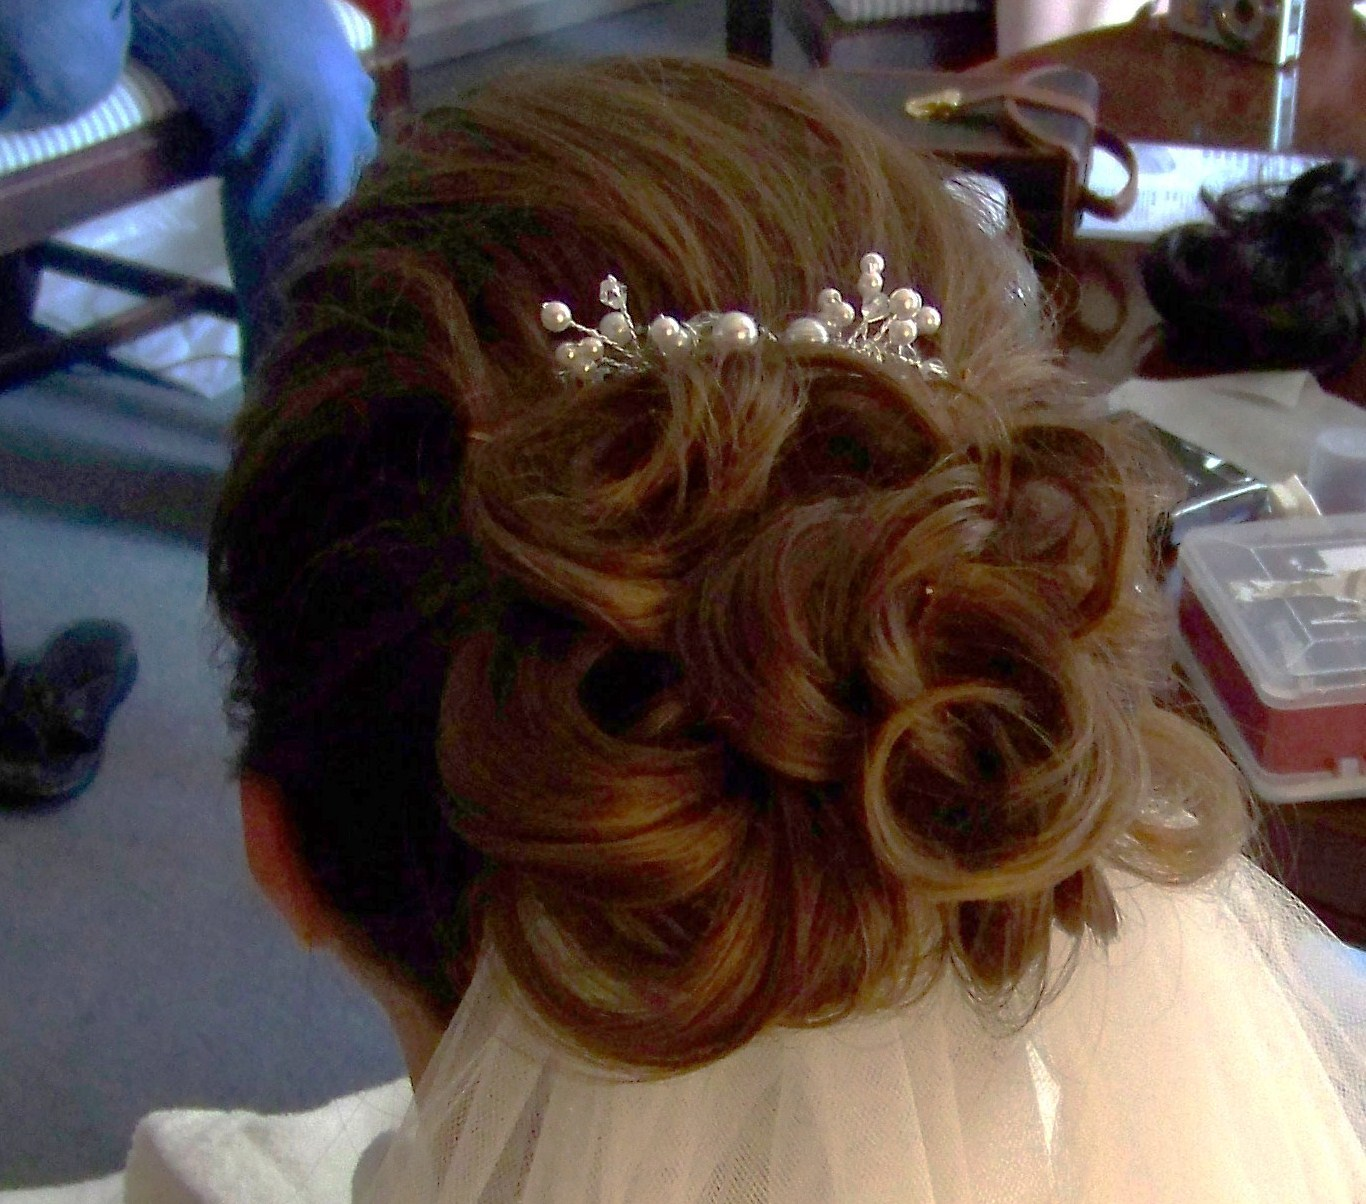 Beauty, Jewelry, Tiaras, Updo, Wedding, Tiara, Day, Curls, Keri anne shea beauty